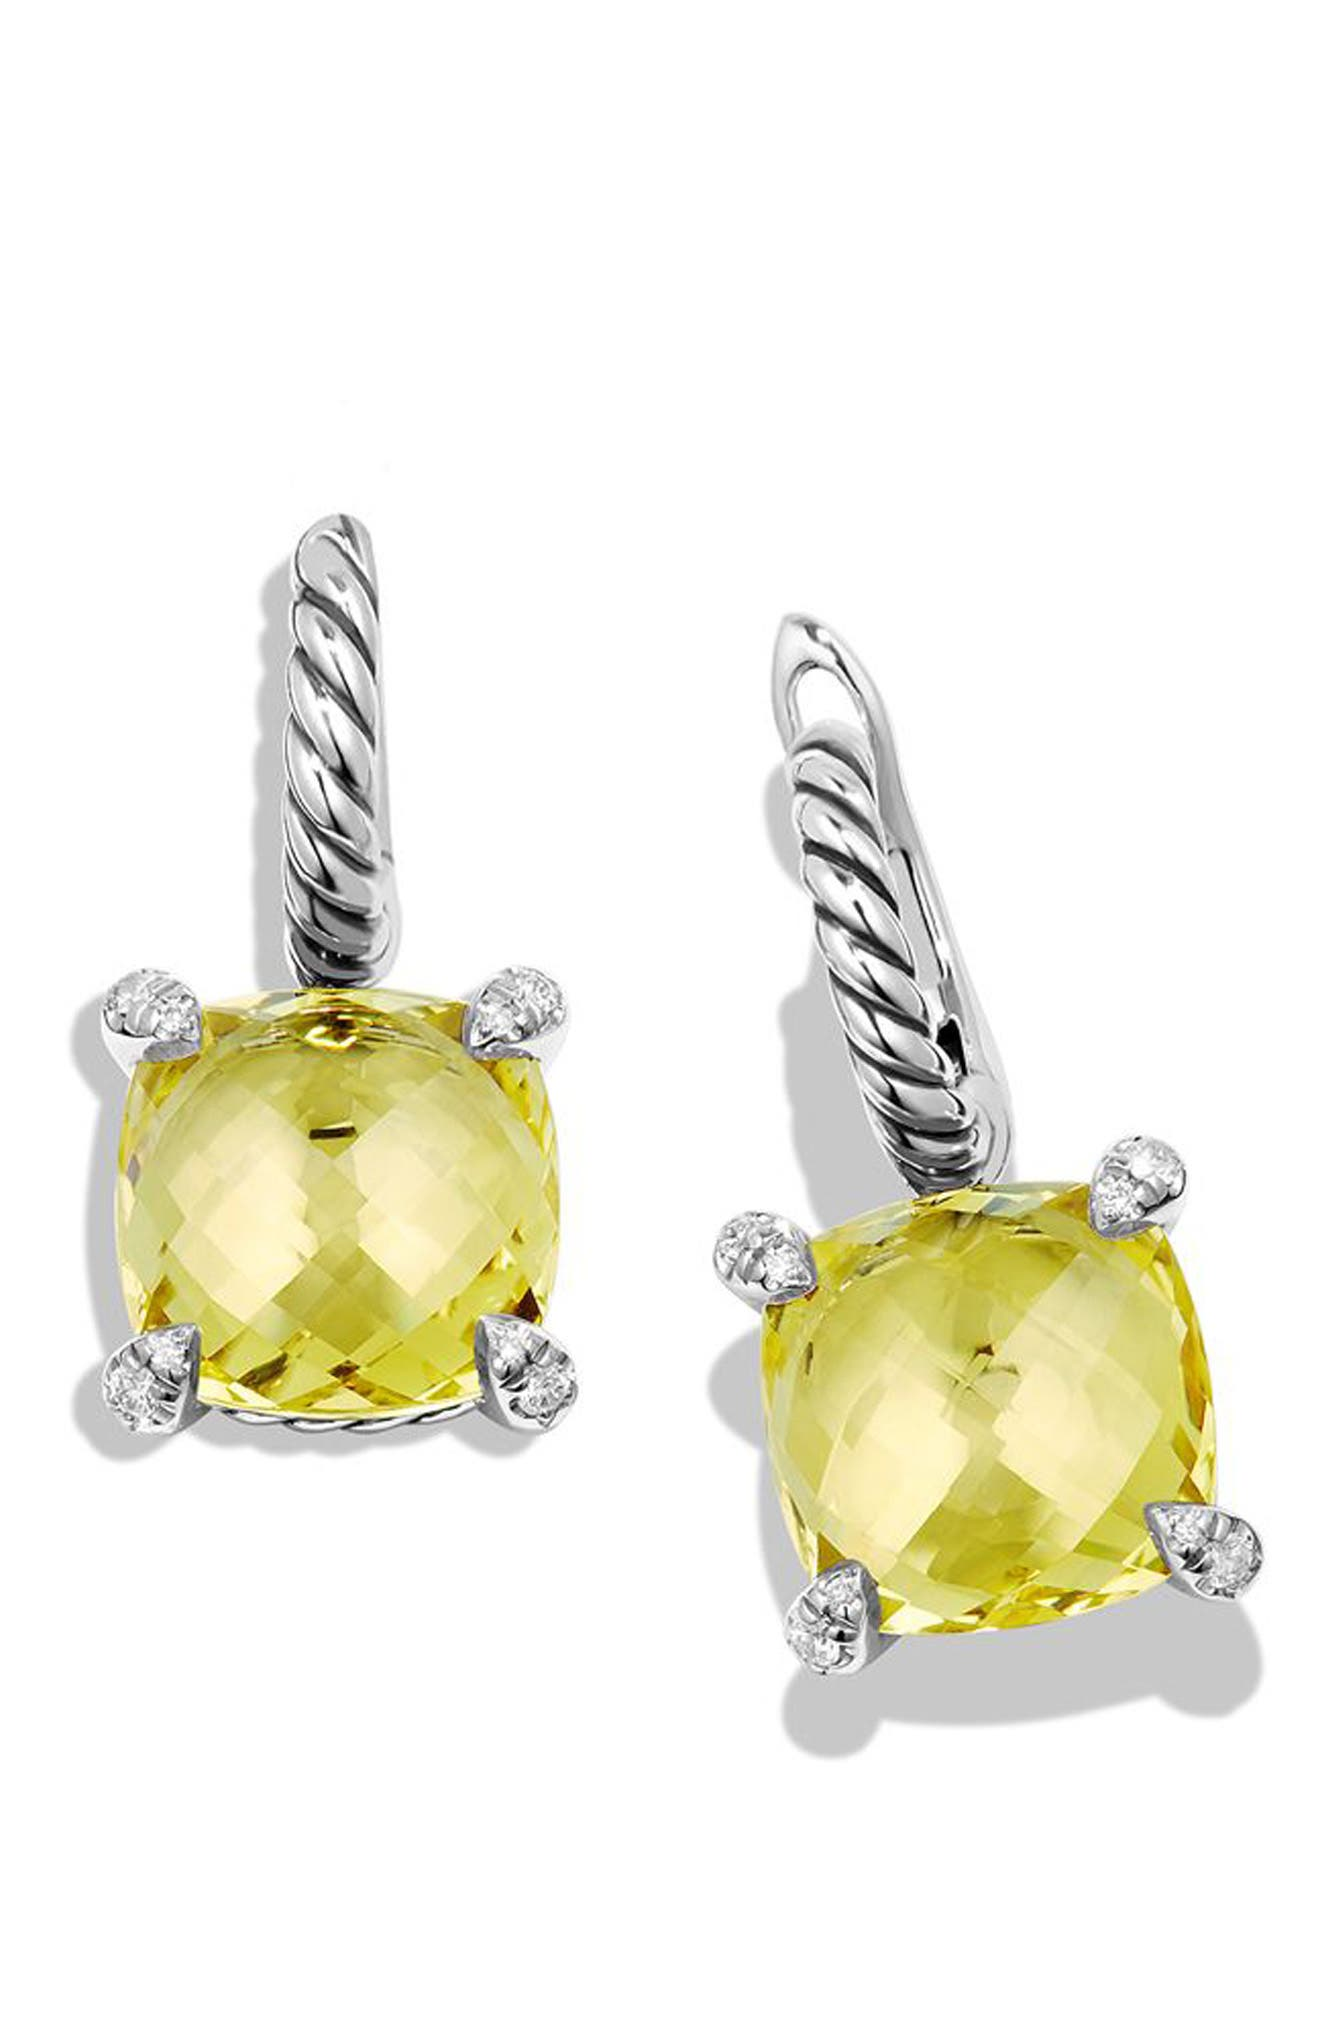 'Châtelaine' Drop Earrings with Semiprecious Stones and Diamonds,                             Alternate thumbnail 4, color,                             001